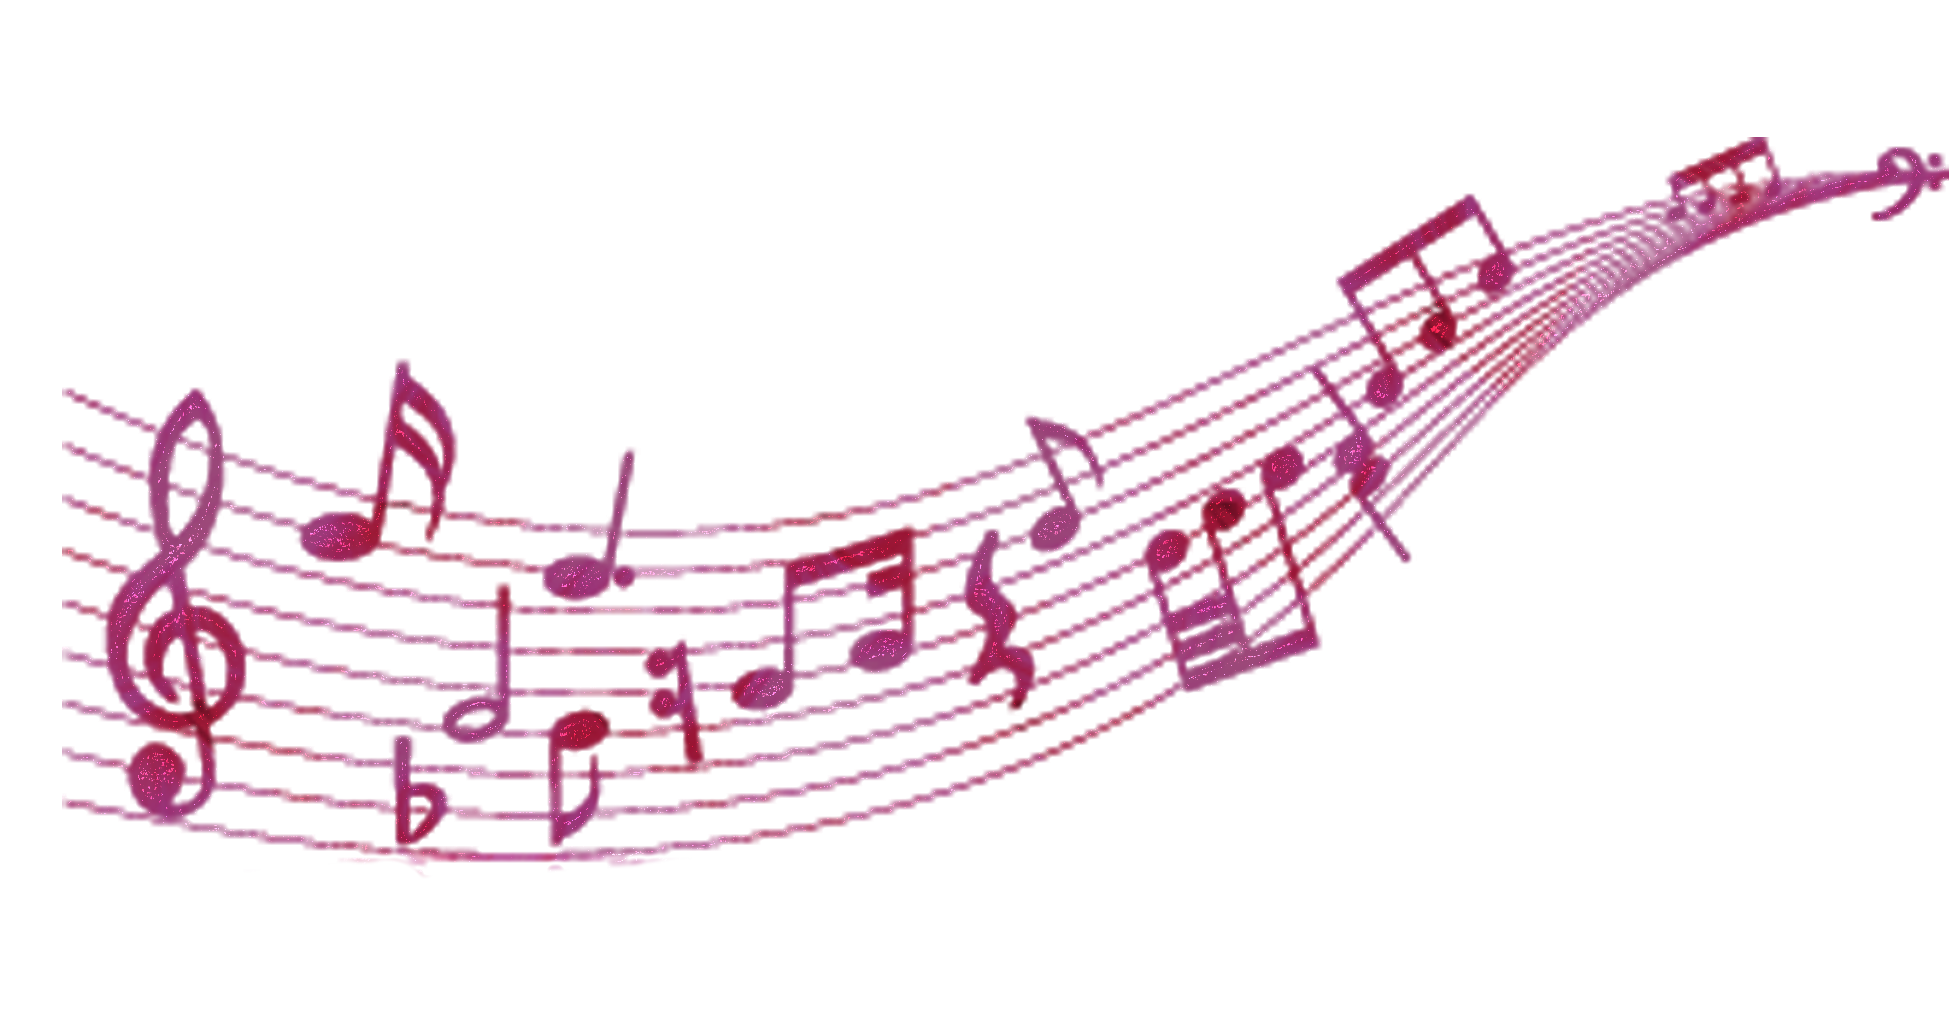 Purple Music Note Picture Images image #48349